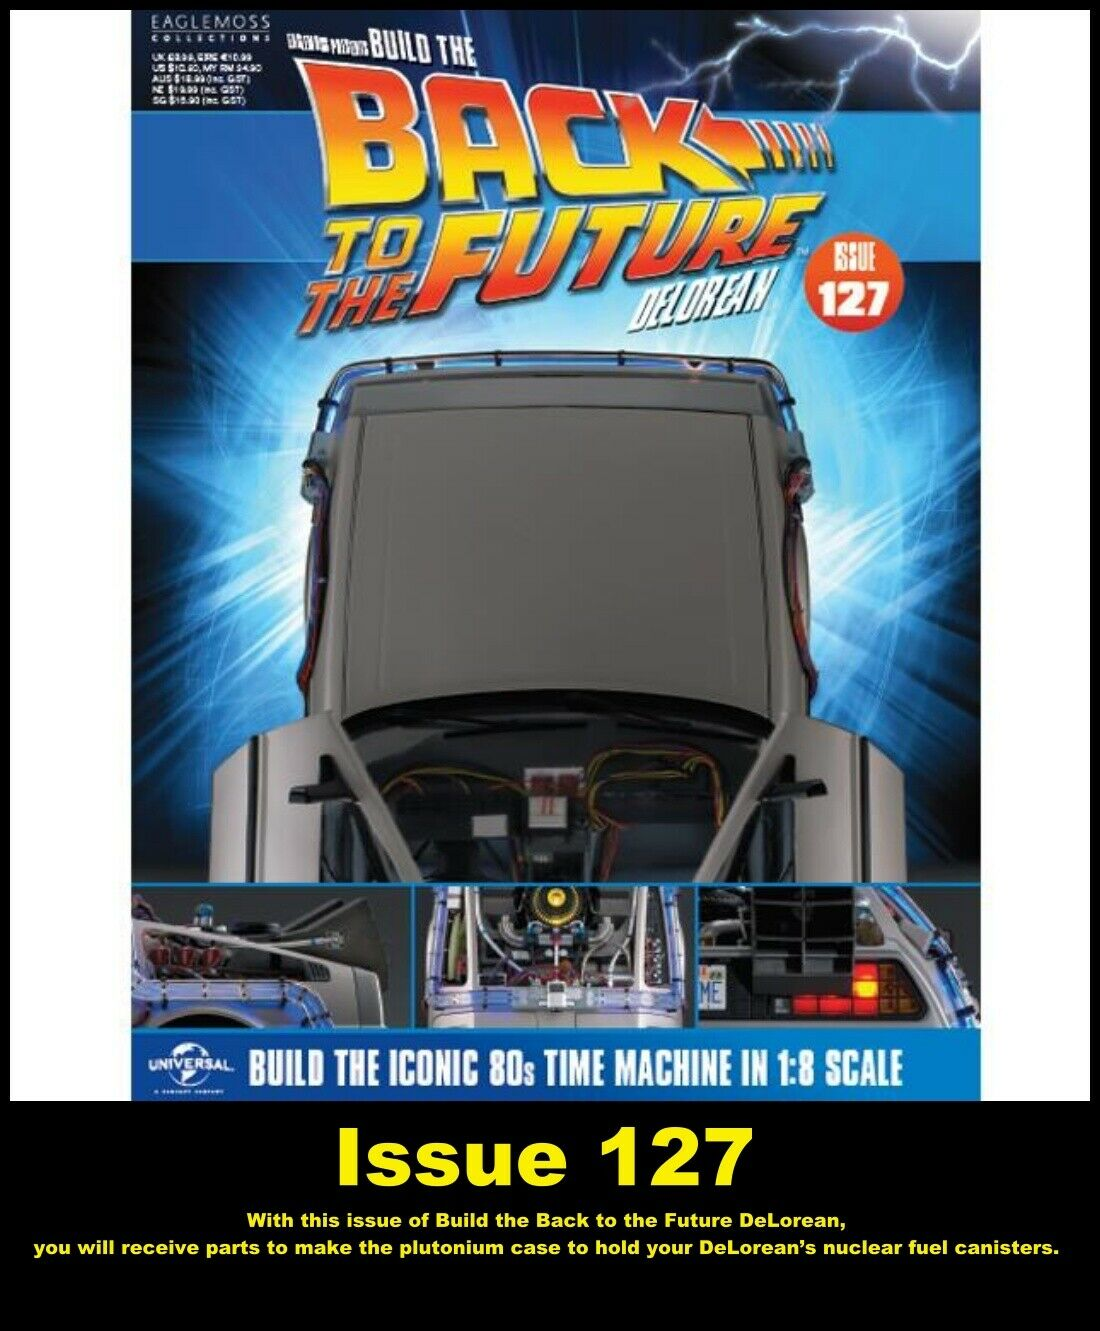 Issue 127